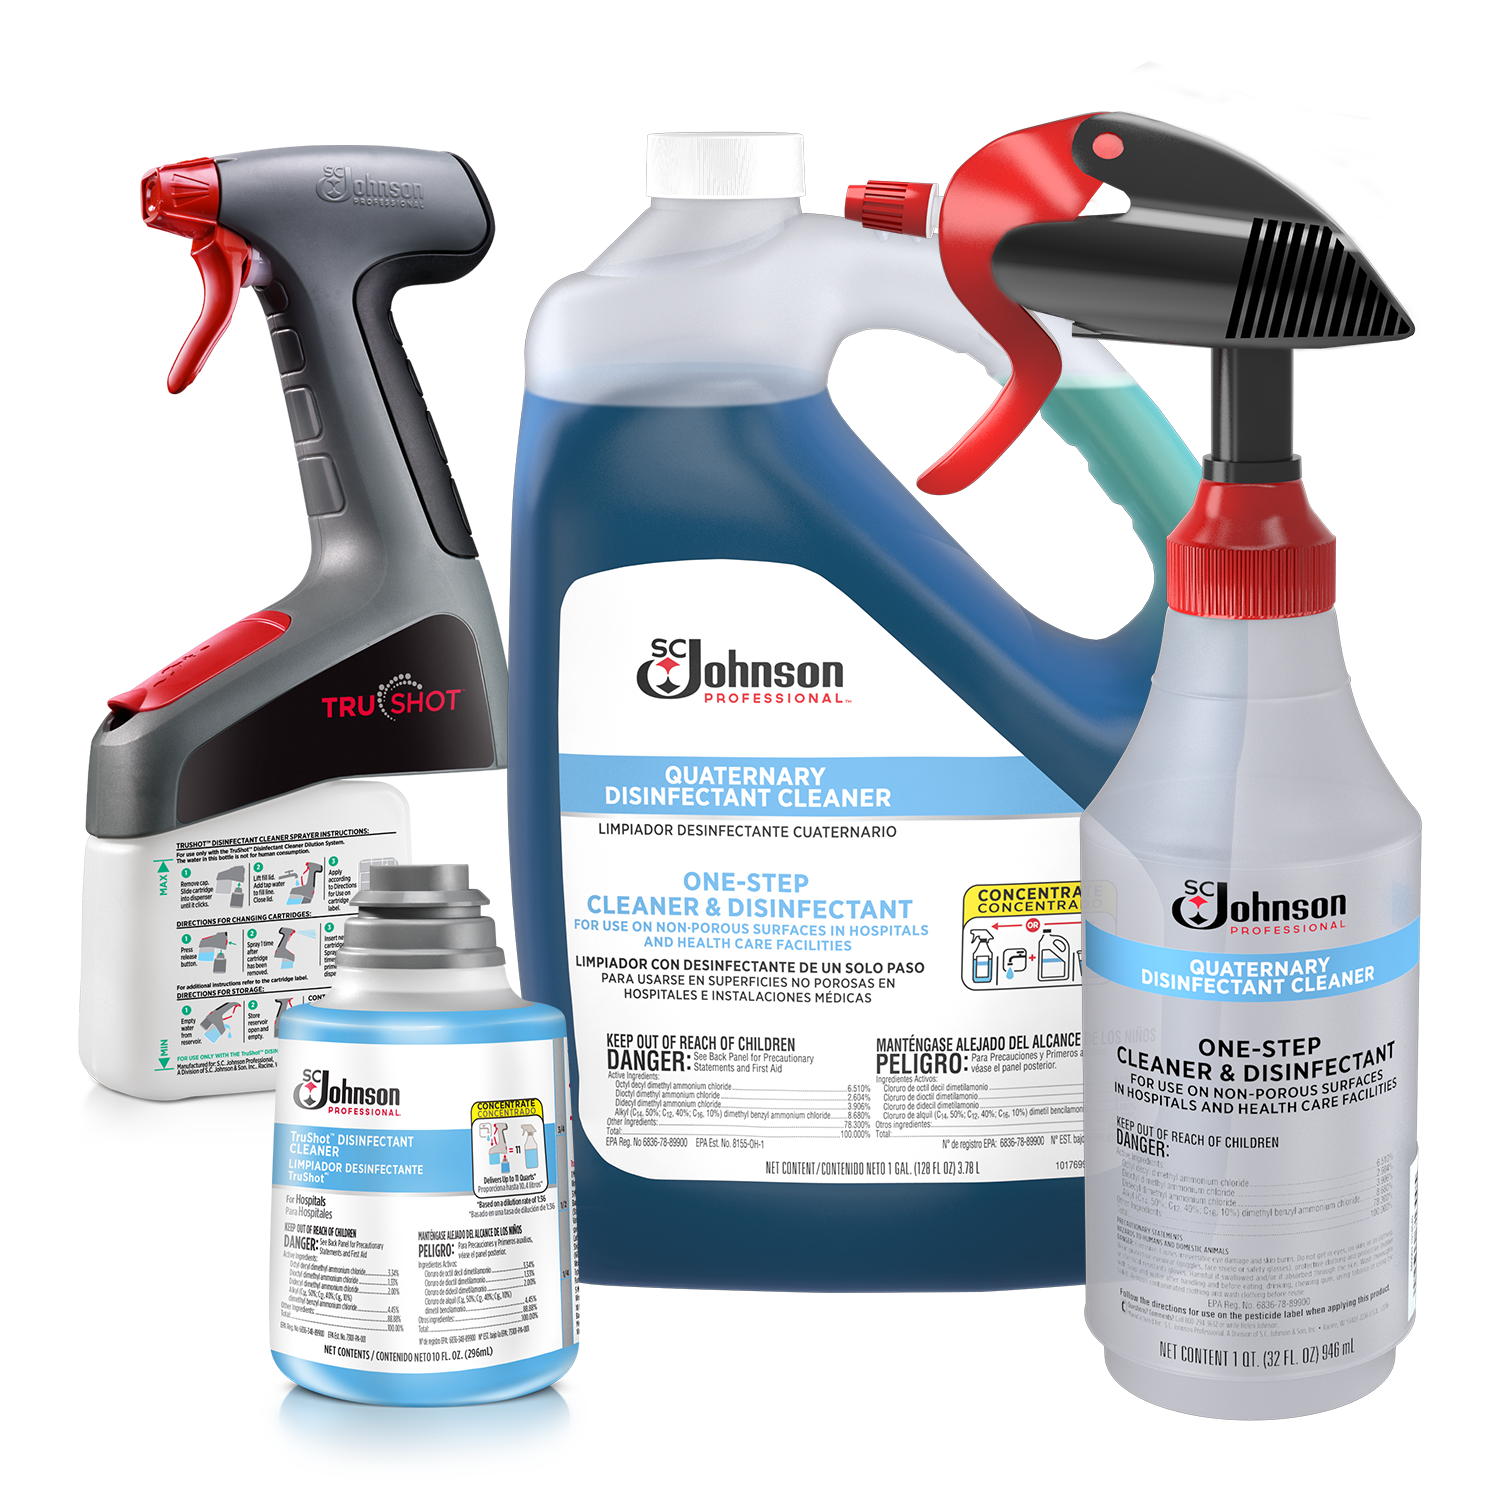 Quaternary Disinfectant Cleaners | SC Johnson Professional®